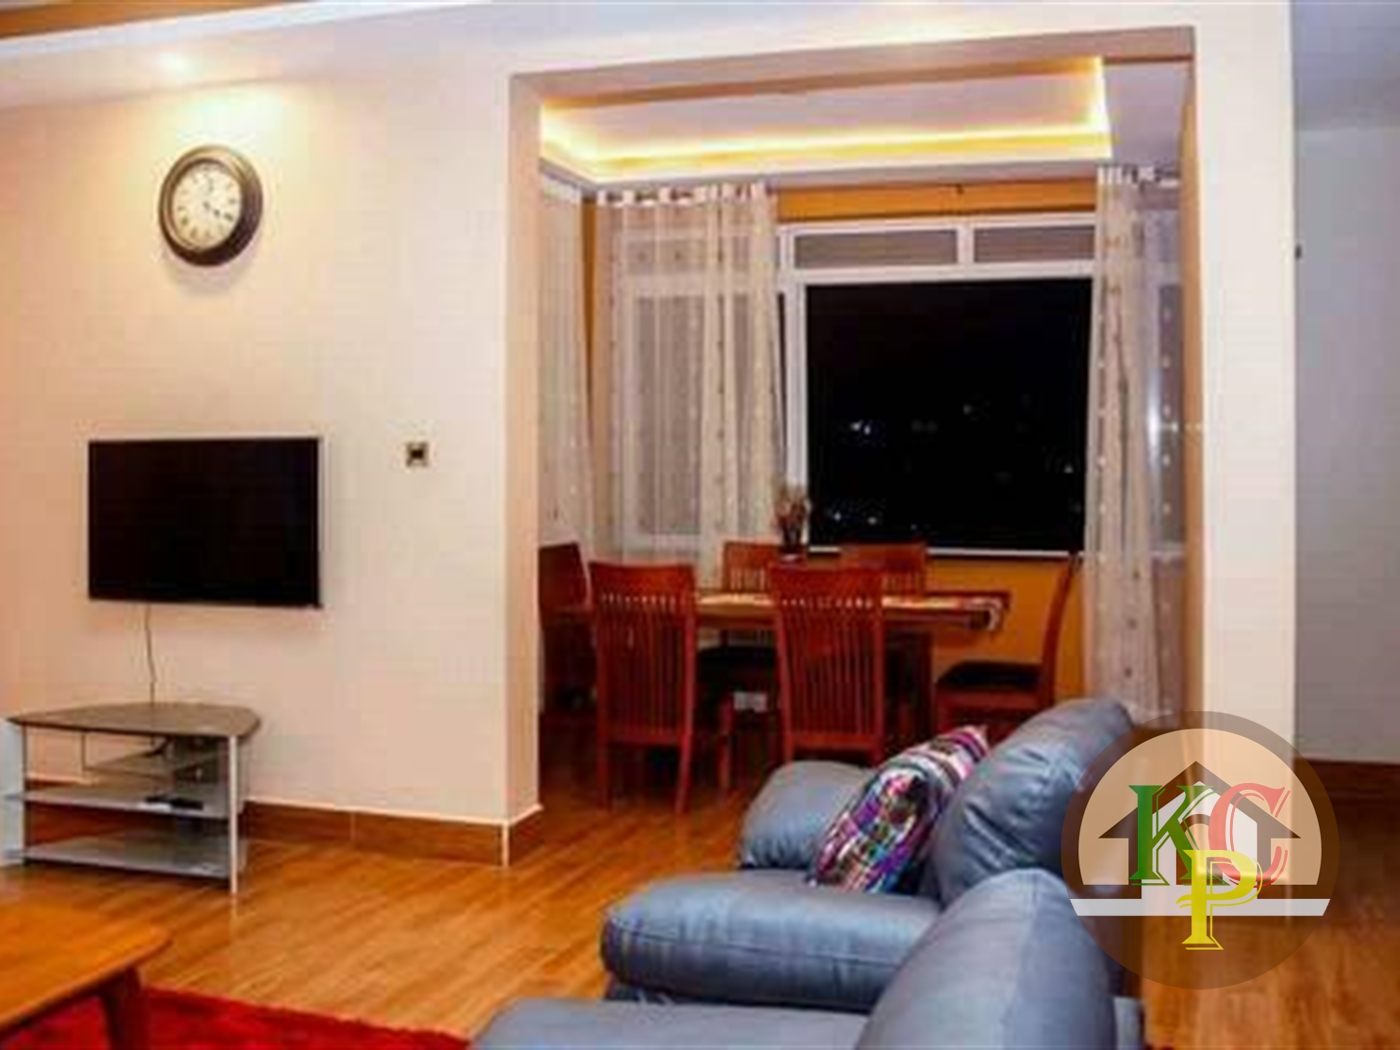 Penthouse for rent in ntinda Kampala